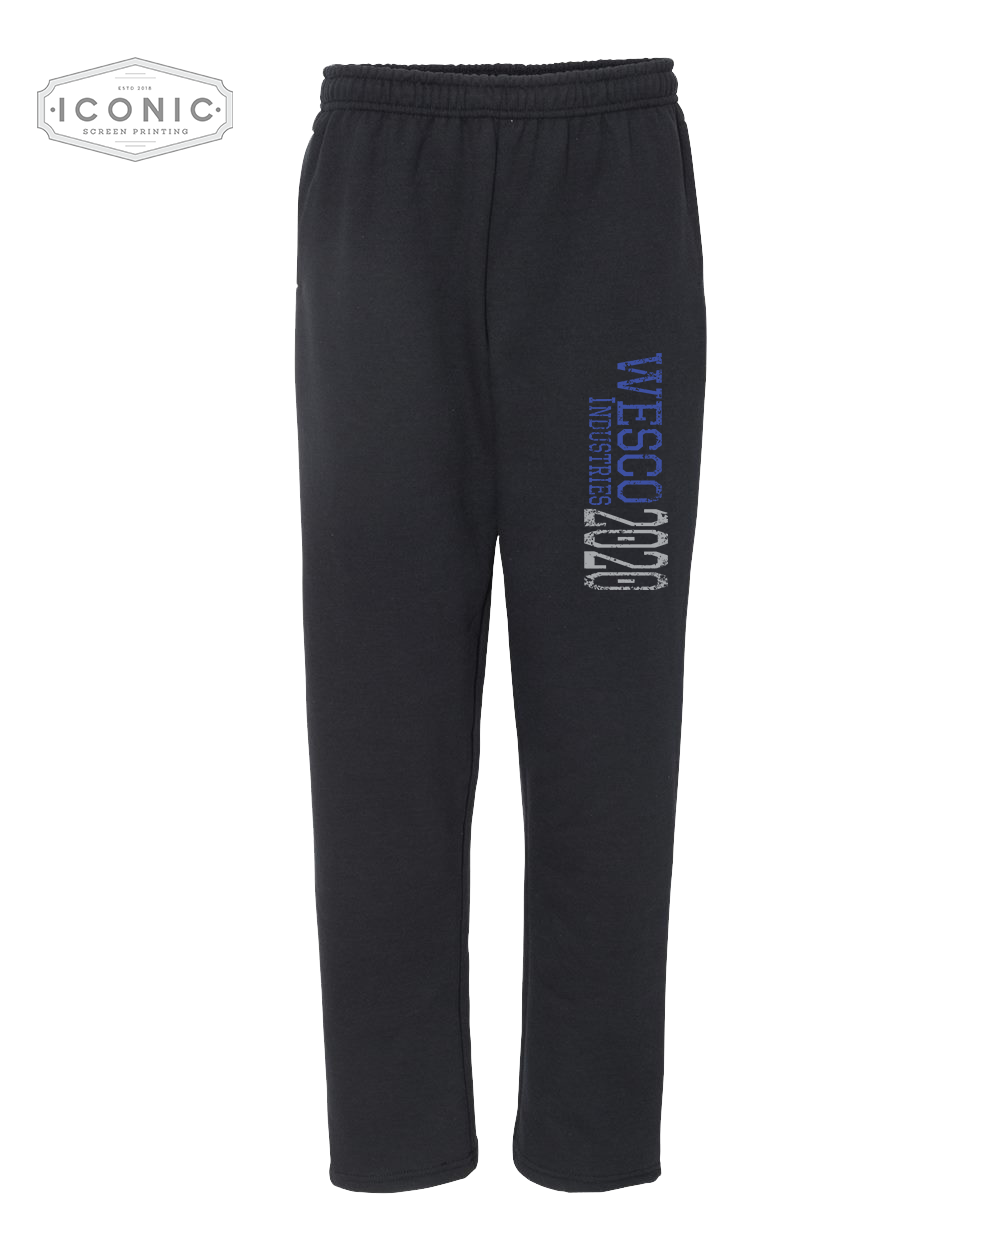 Sweatpants without Pockets Wesco 2020